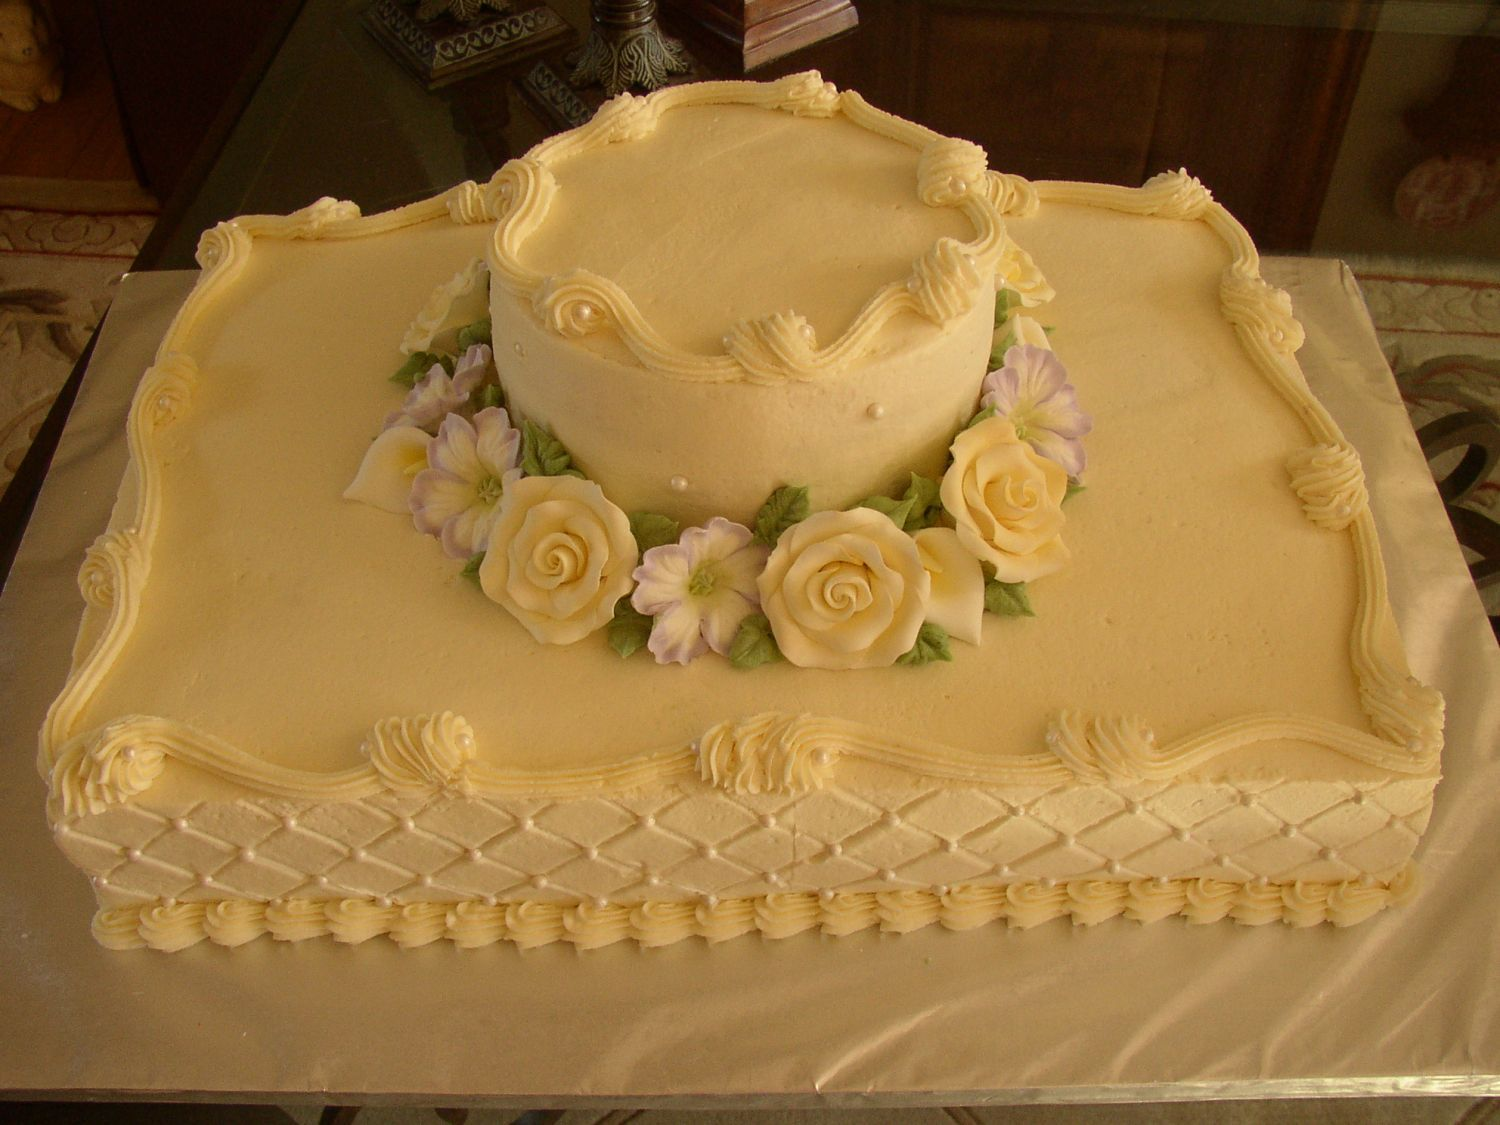 Design Your Own Sheet Cake : sheet+cake+wedding+-+Buttercream,+qilted+with+pearls ...